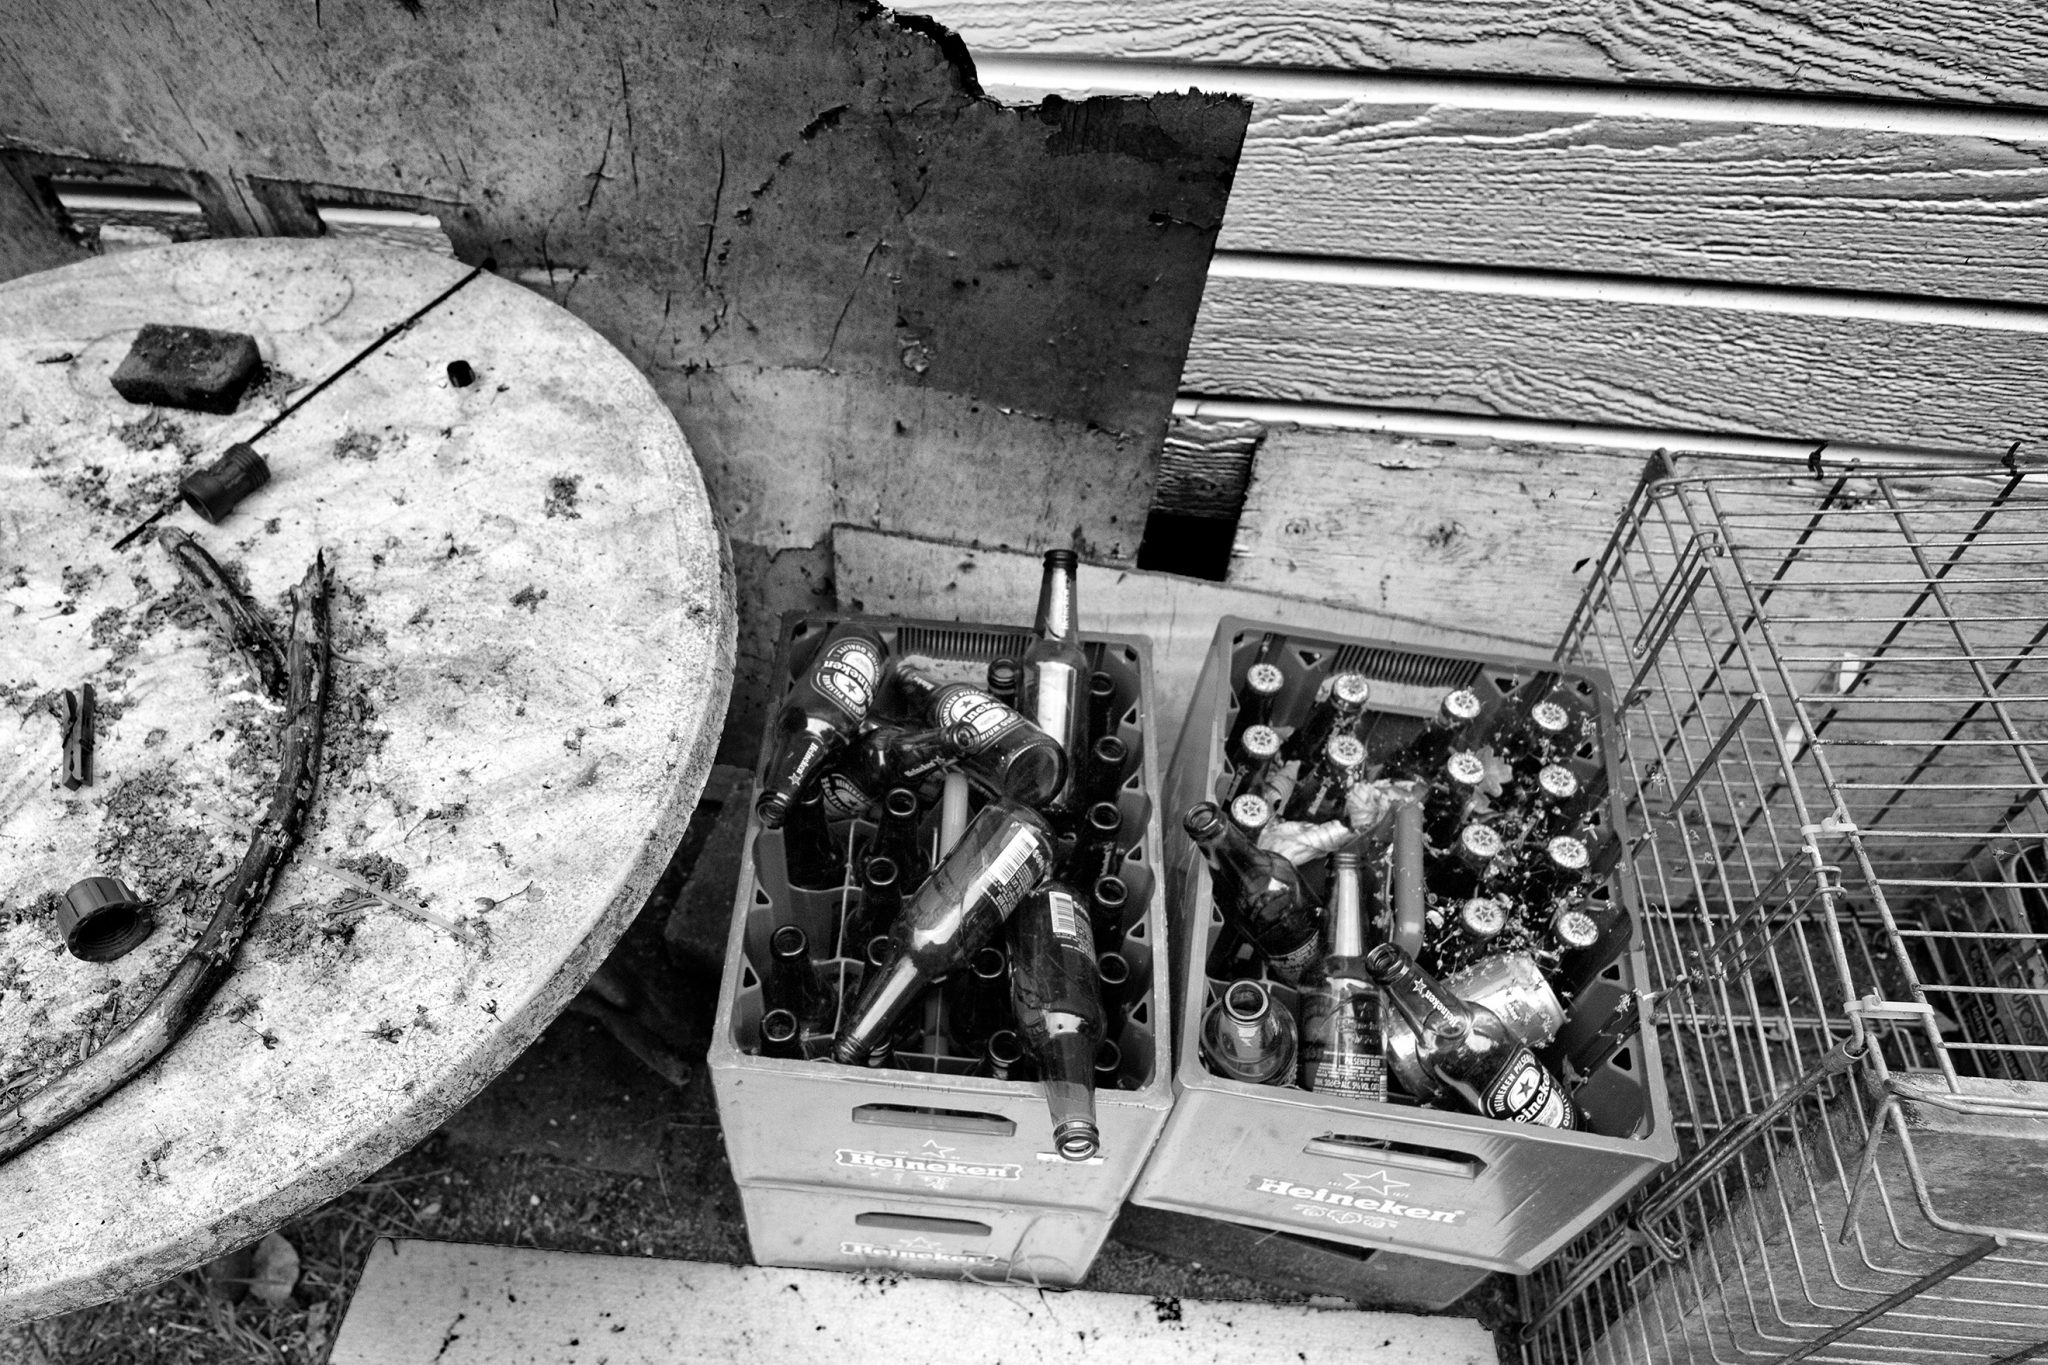 Beer bottles - Documentary Photography